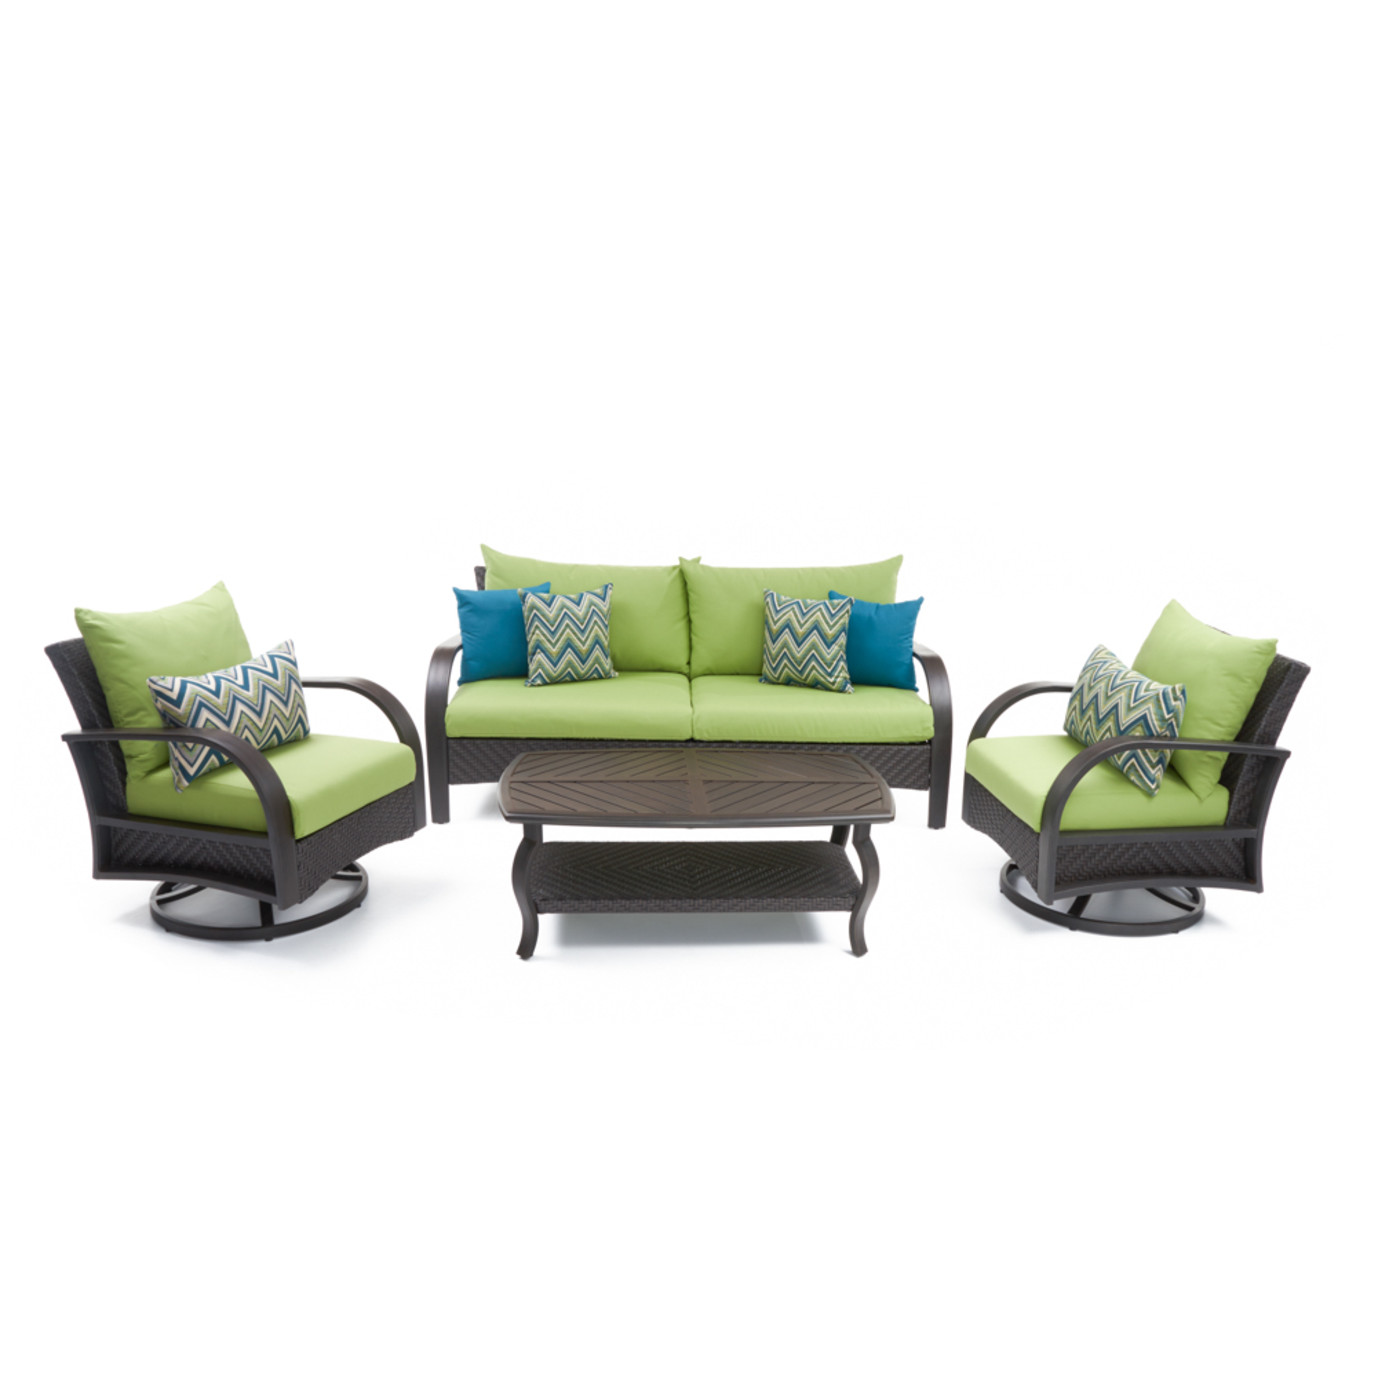 Barcelo™ 4 Piece Motion Club & Sofa Set - Ginkgo Green